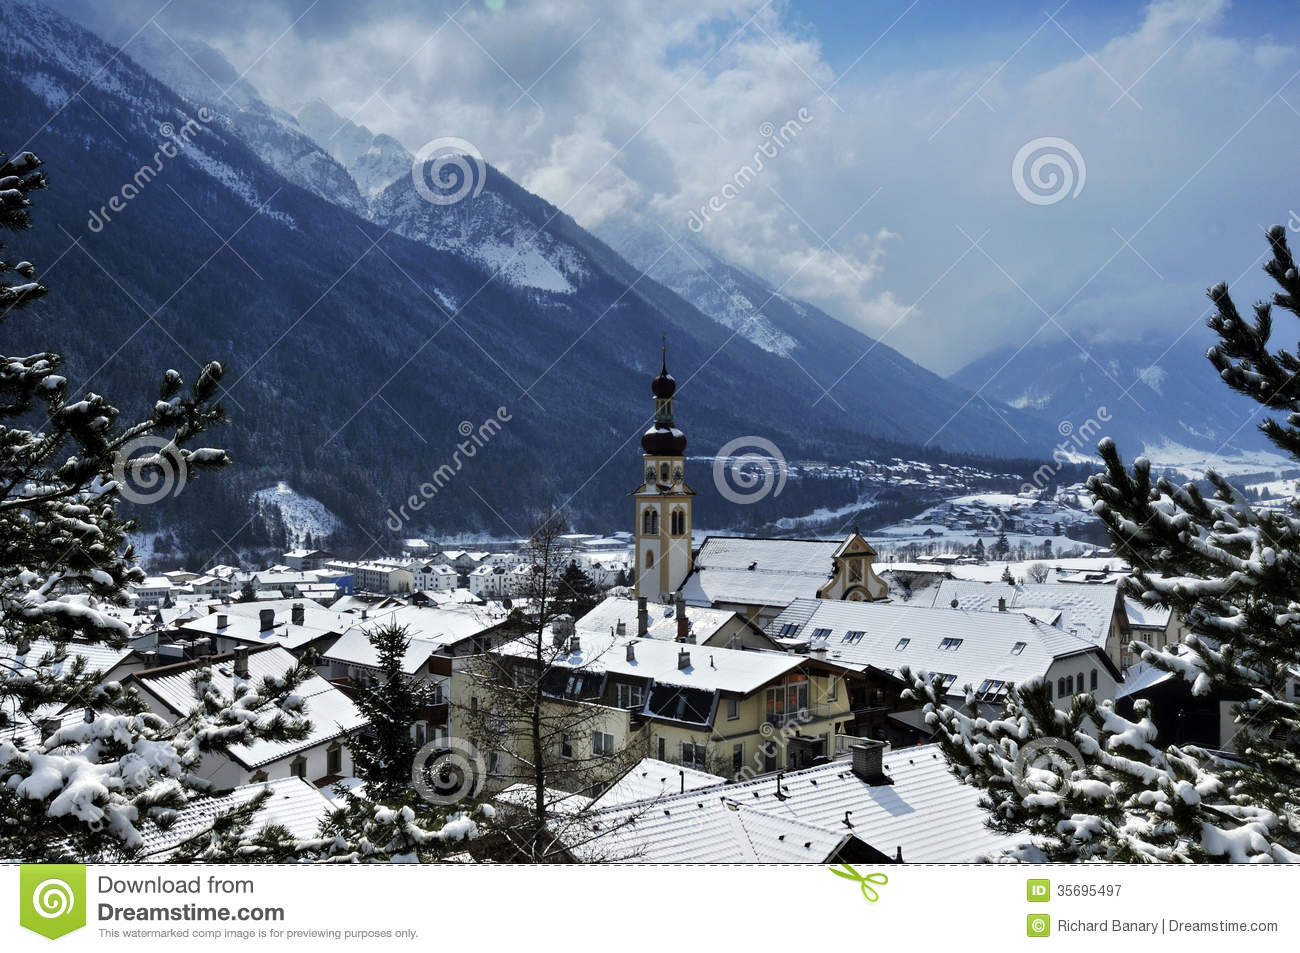 Fulpmes Austria  city photo : Winter scenery in Fulpmes village in Stubaital in Tyrol Austria.